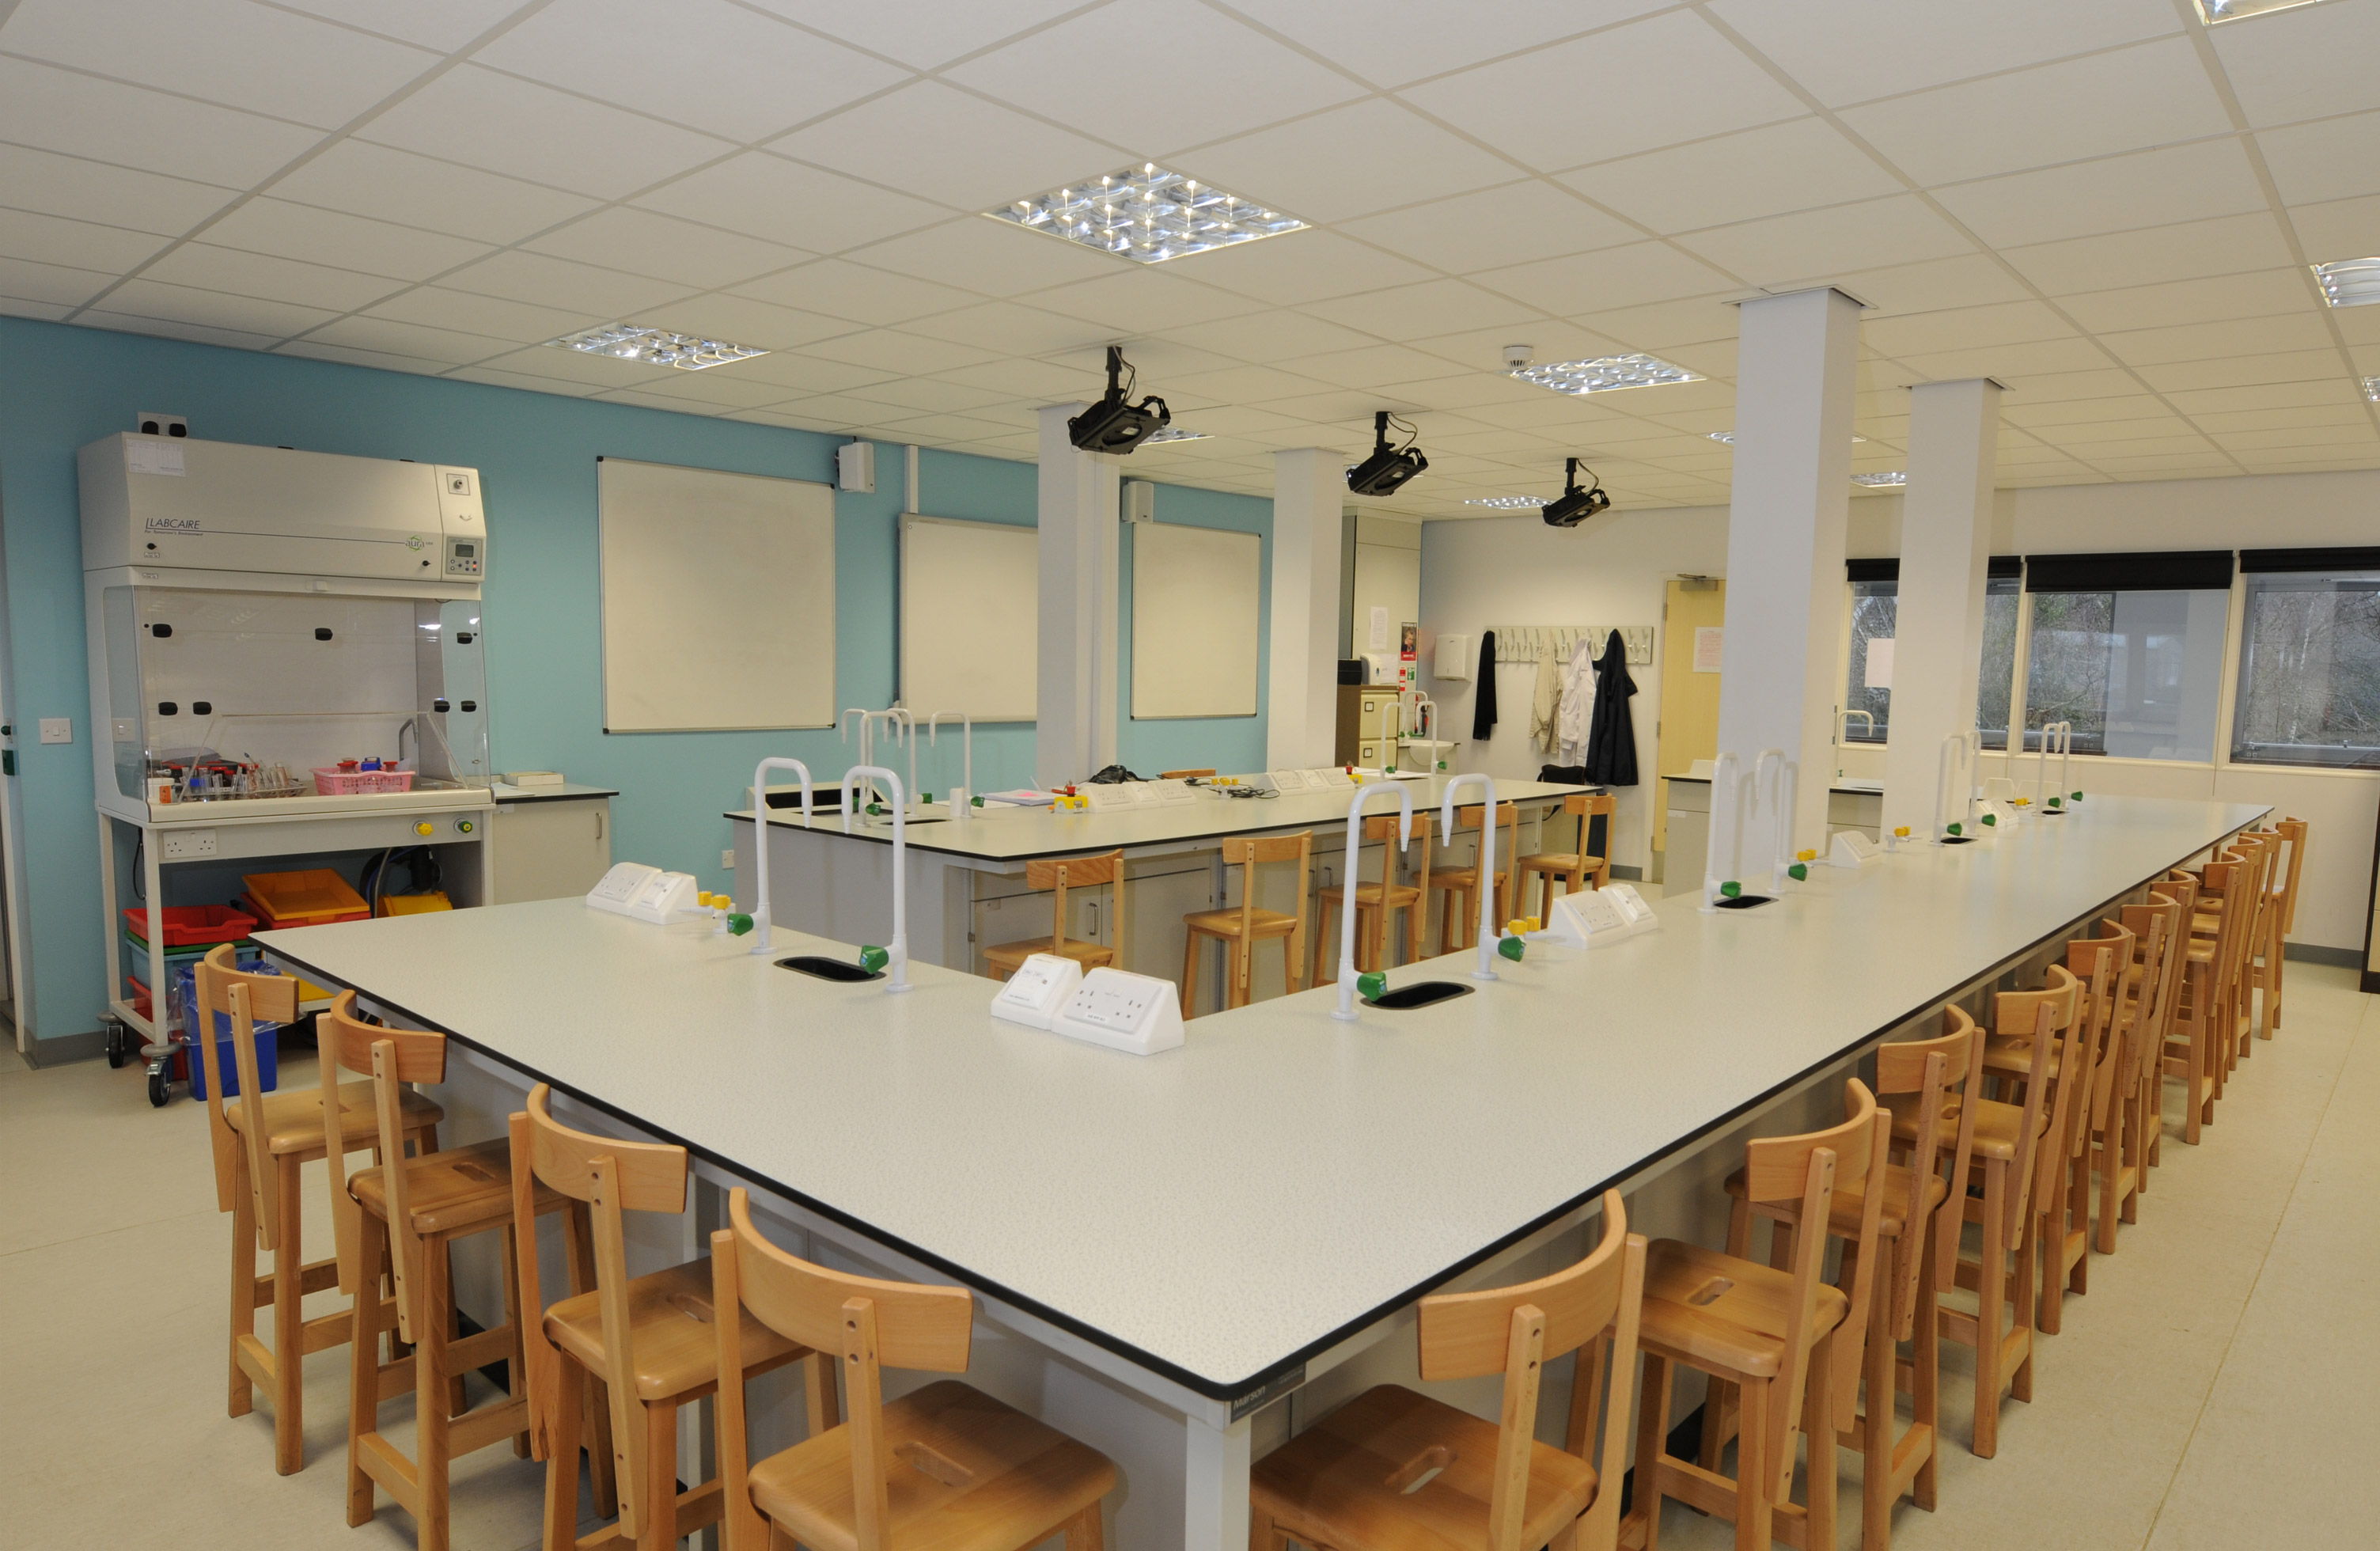 W.E. Marson secondary education laboratory furniture